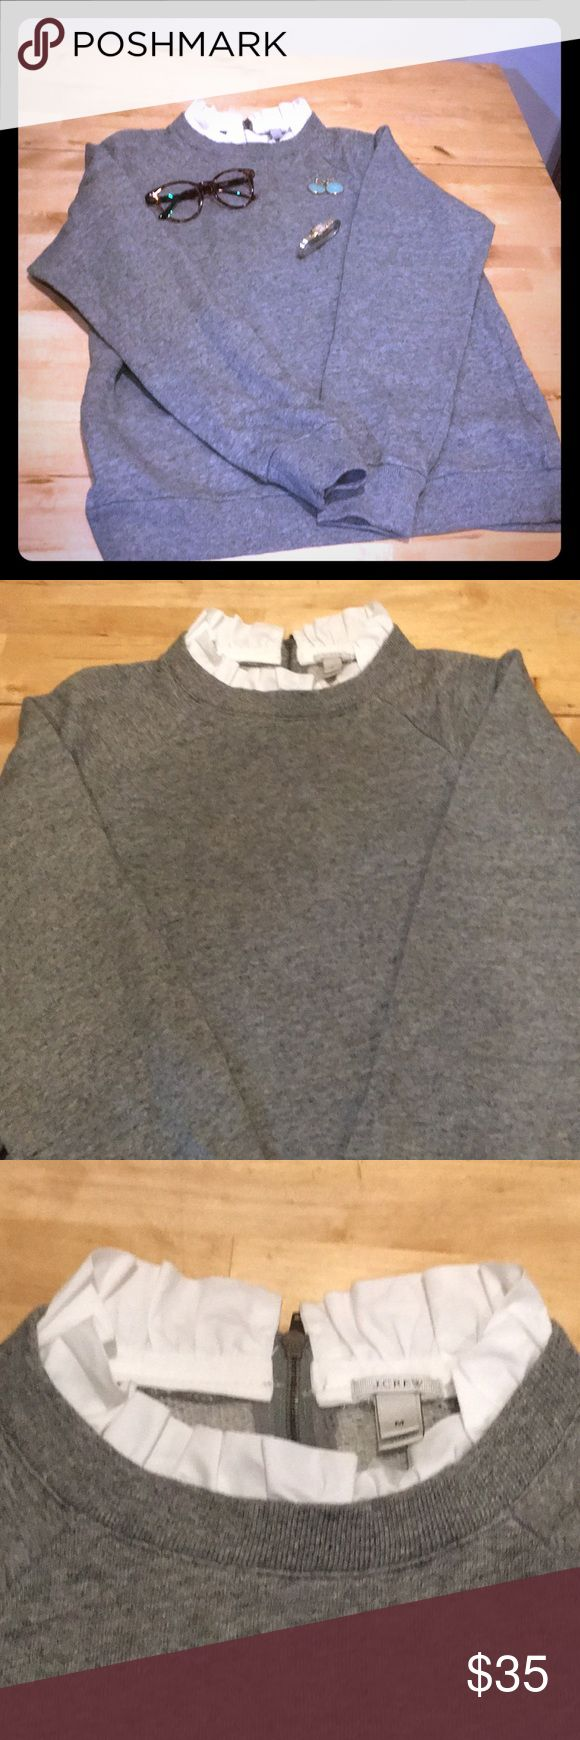 NWOT j. Crew grey dressy sweater with white collar Absolutely gorgeous sweater. So dressy with a long necklace and skirt J. Crew Sweaters Cardigans